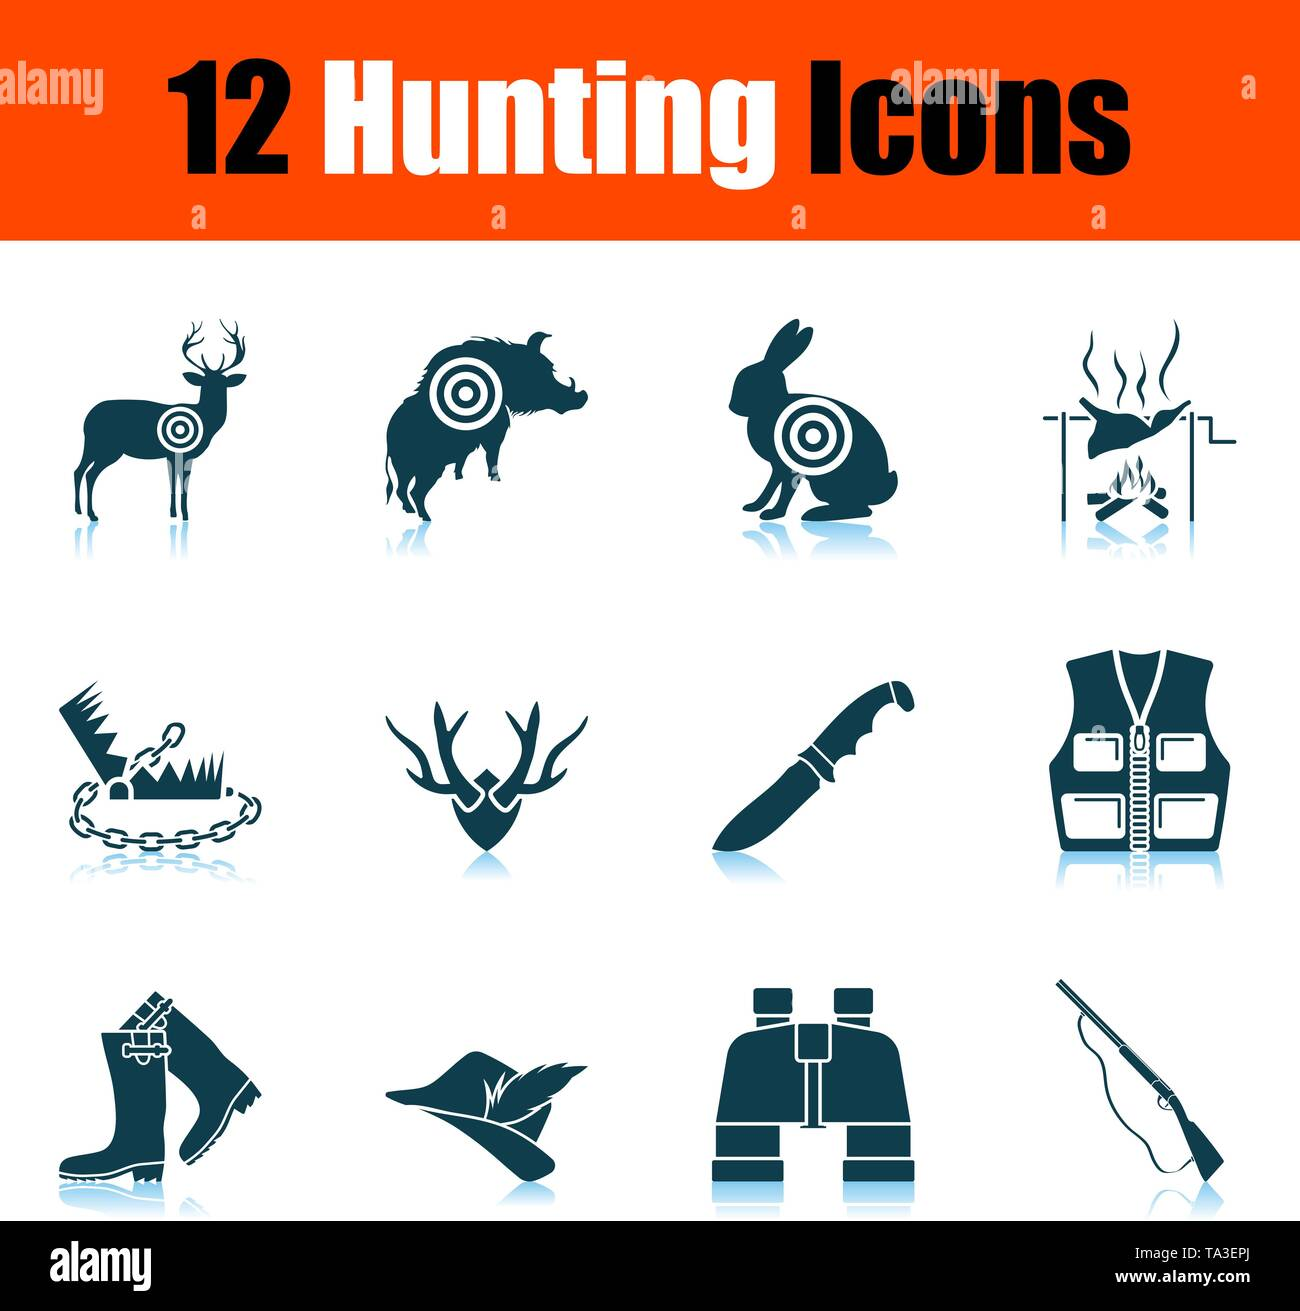 Hunting Icon Set  Shadow Reflection Design  Vector